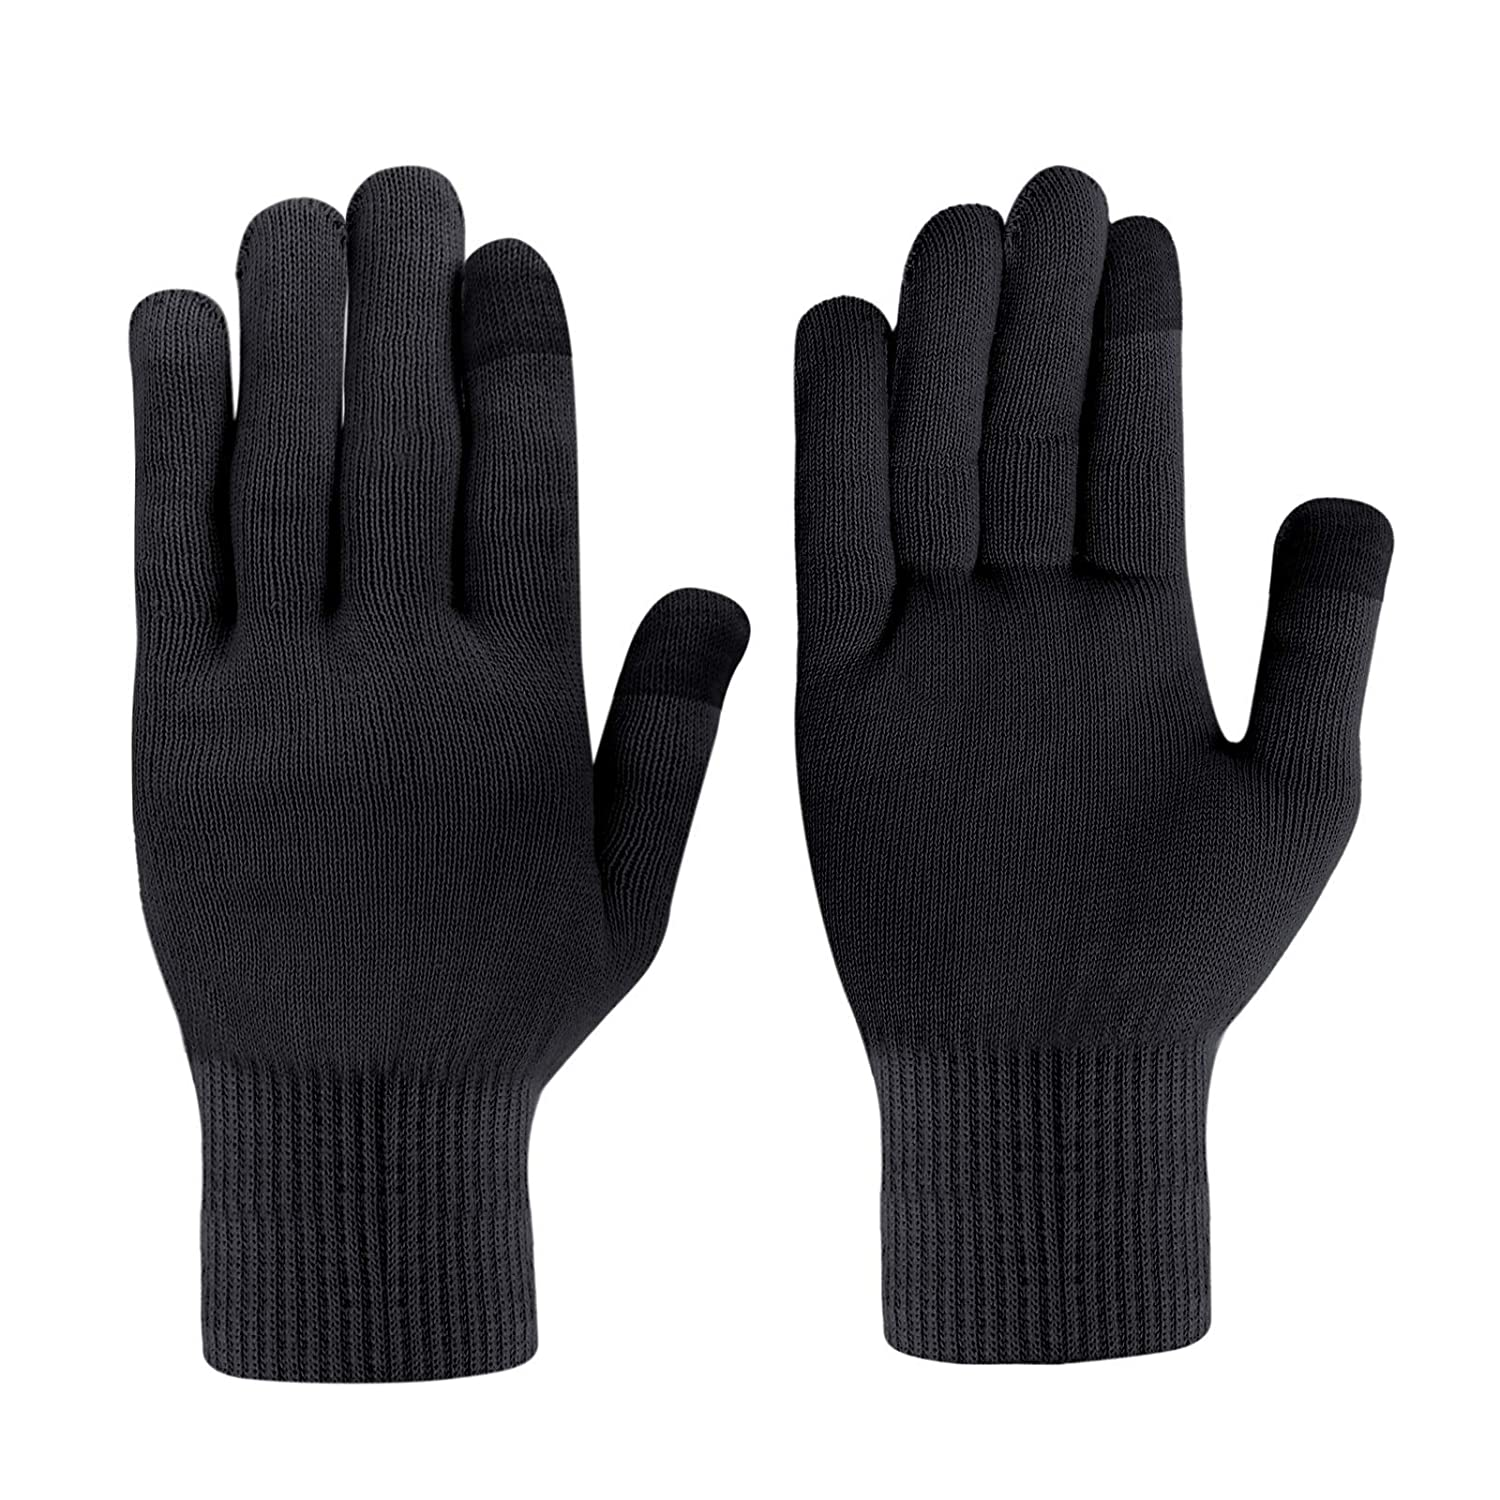 MIG4U Moisturizing Beauty Gloves Touch Screen Overnight Sleeping Glove Large for Men SPA, Dry Hands, Nighttime Lotion, UV Protection, Cosmetic Treatment, Black 1 Pairs : Beauty